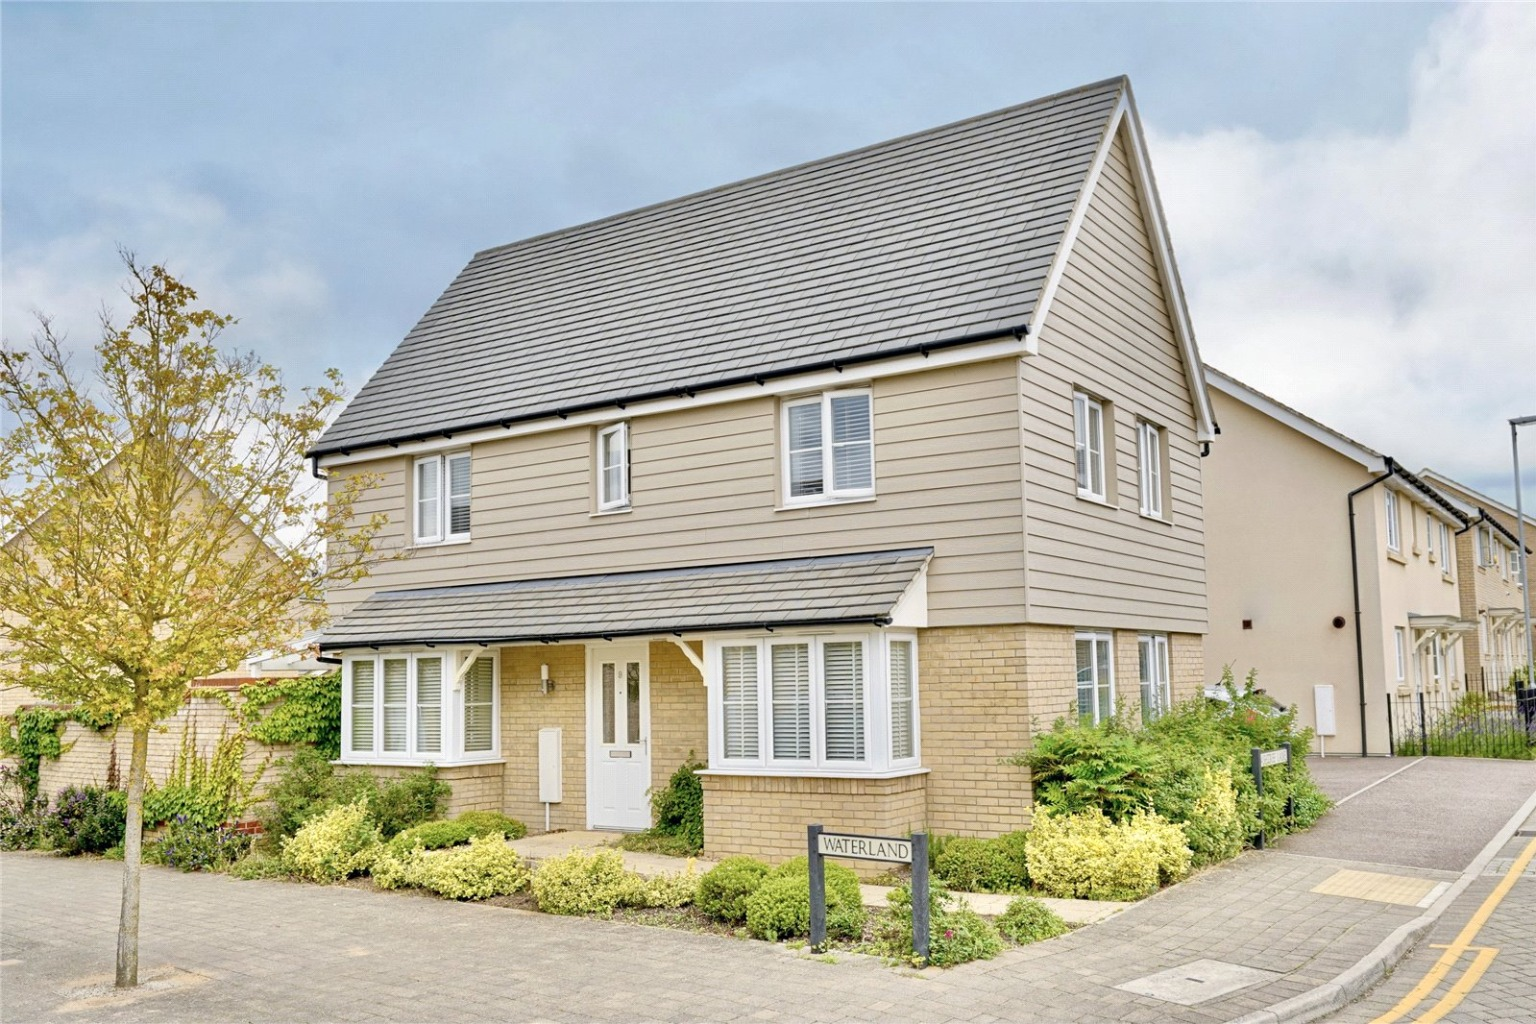 3 bed  for sale in Waterland, St. Neots, PE19